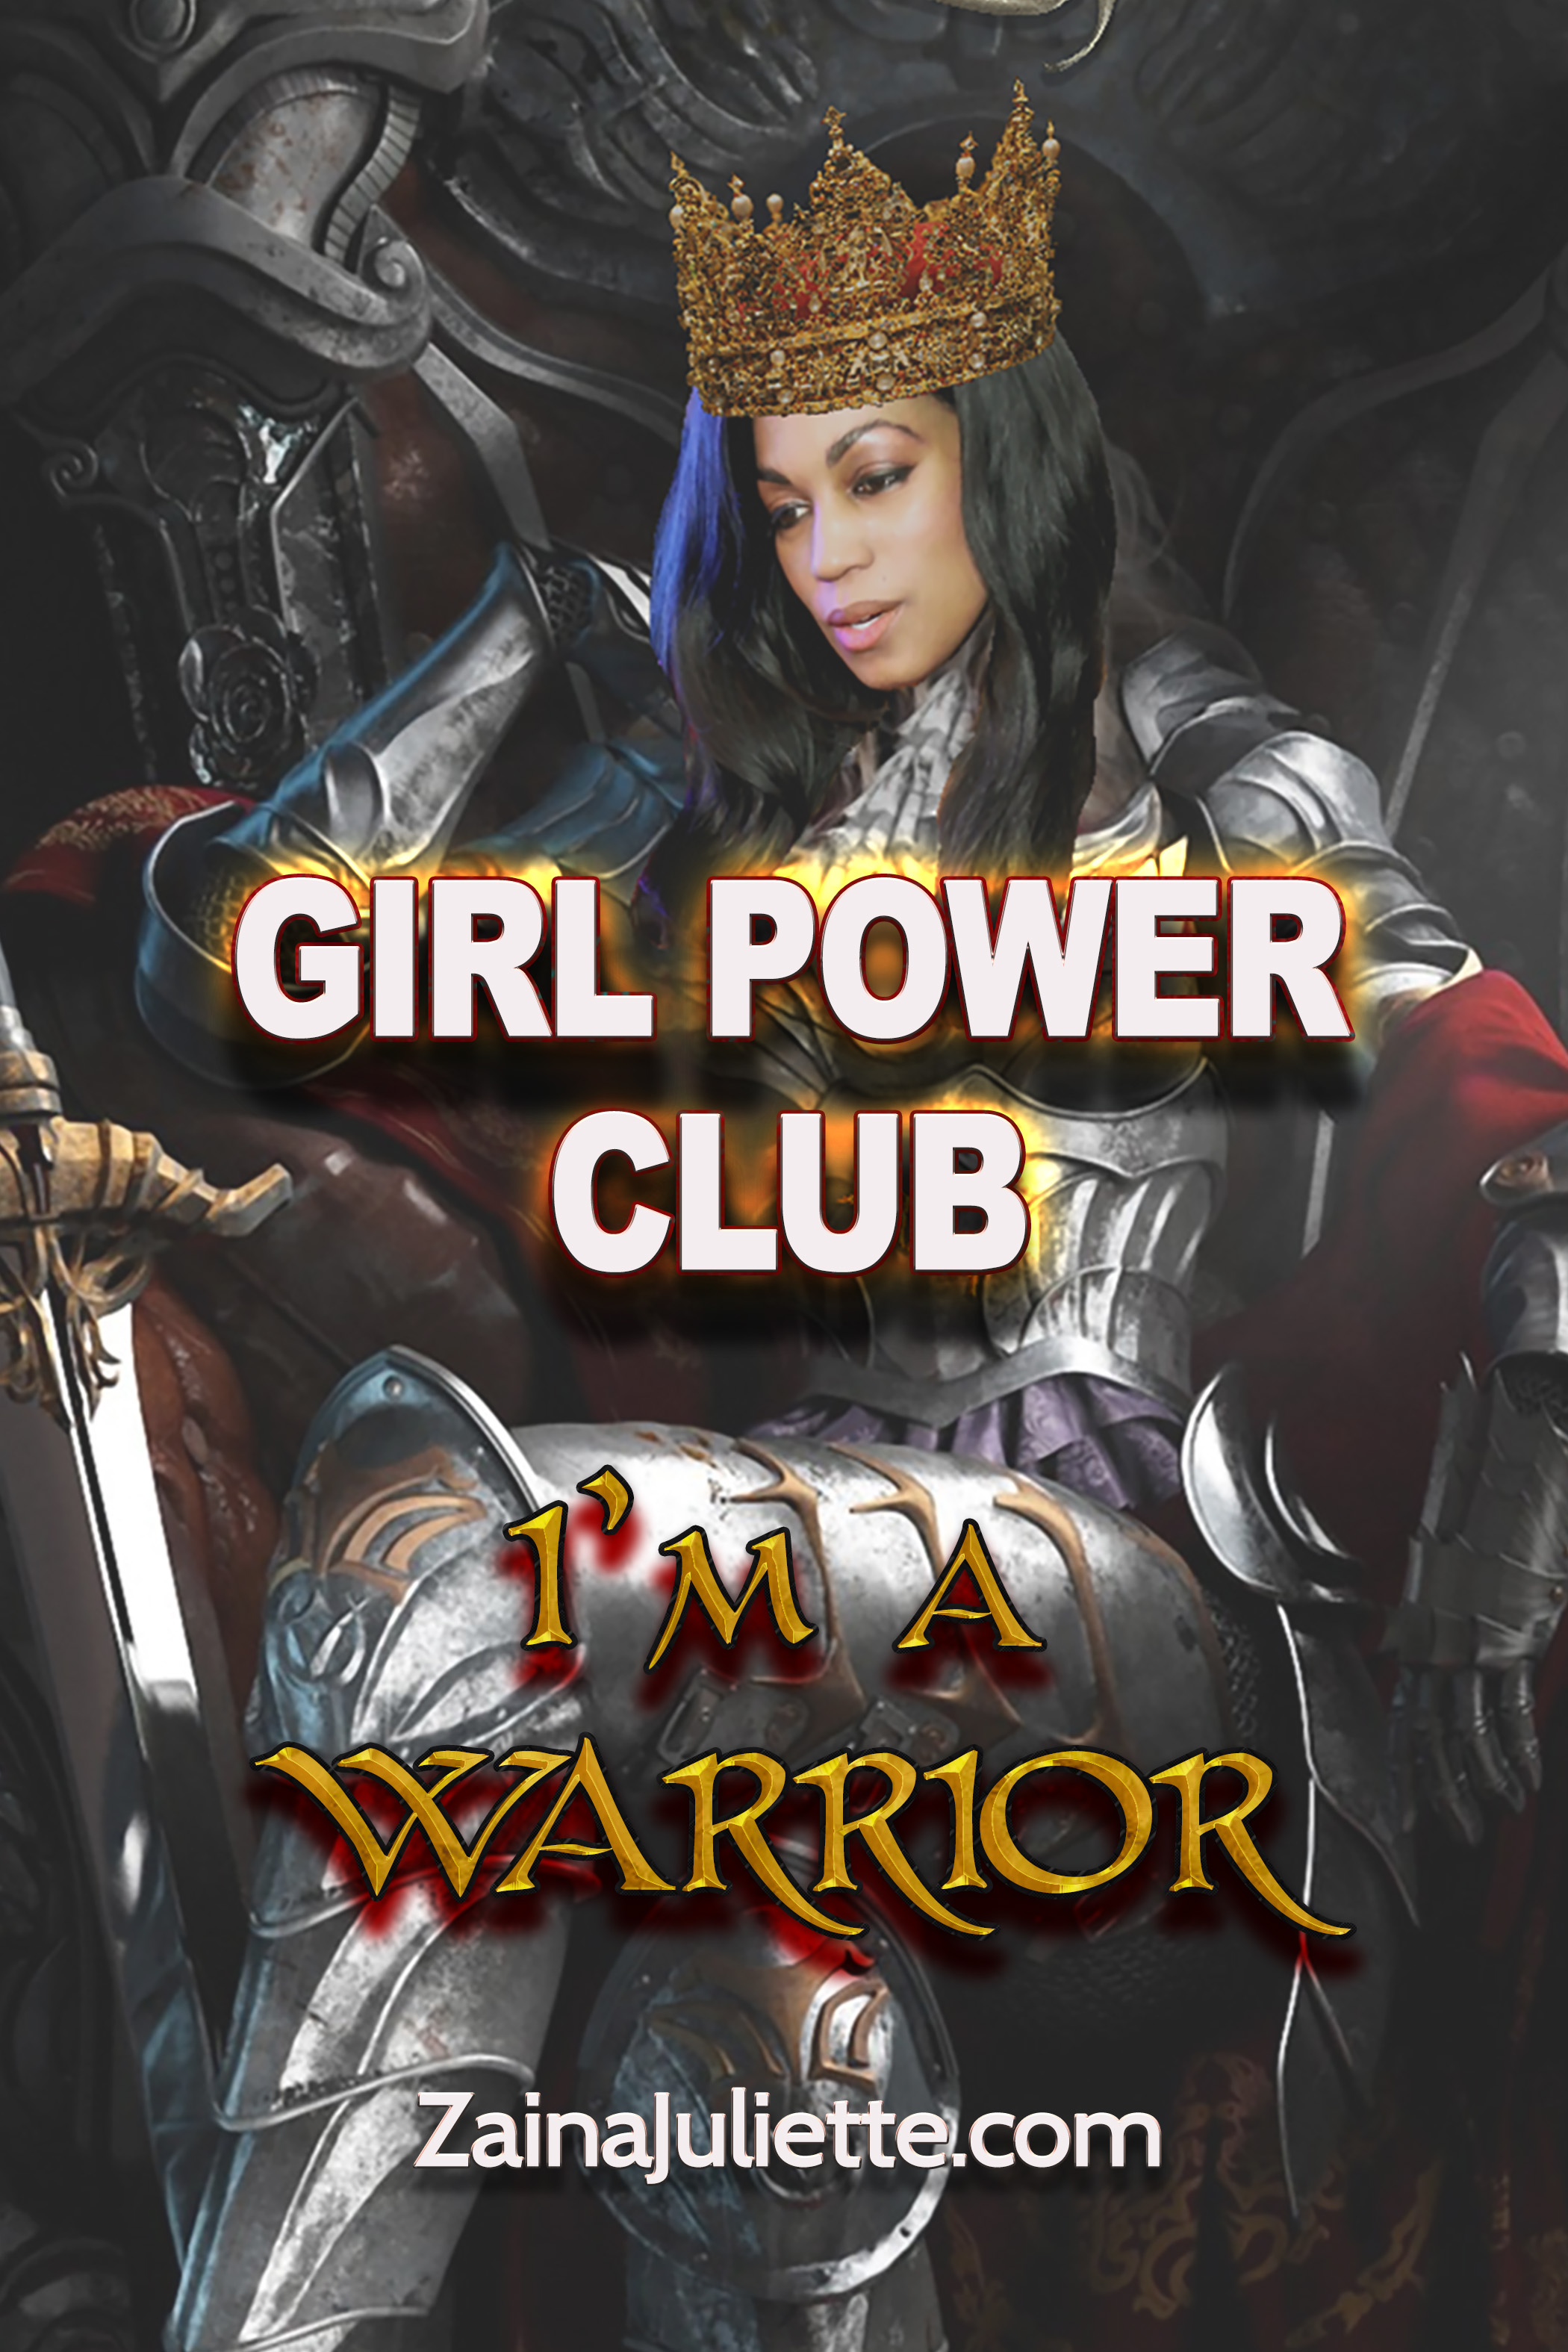 Girl Power Club Zaina Juliette